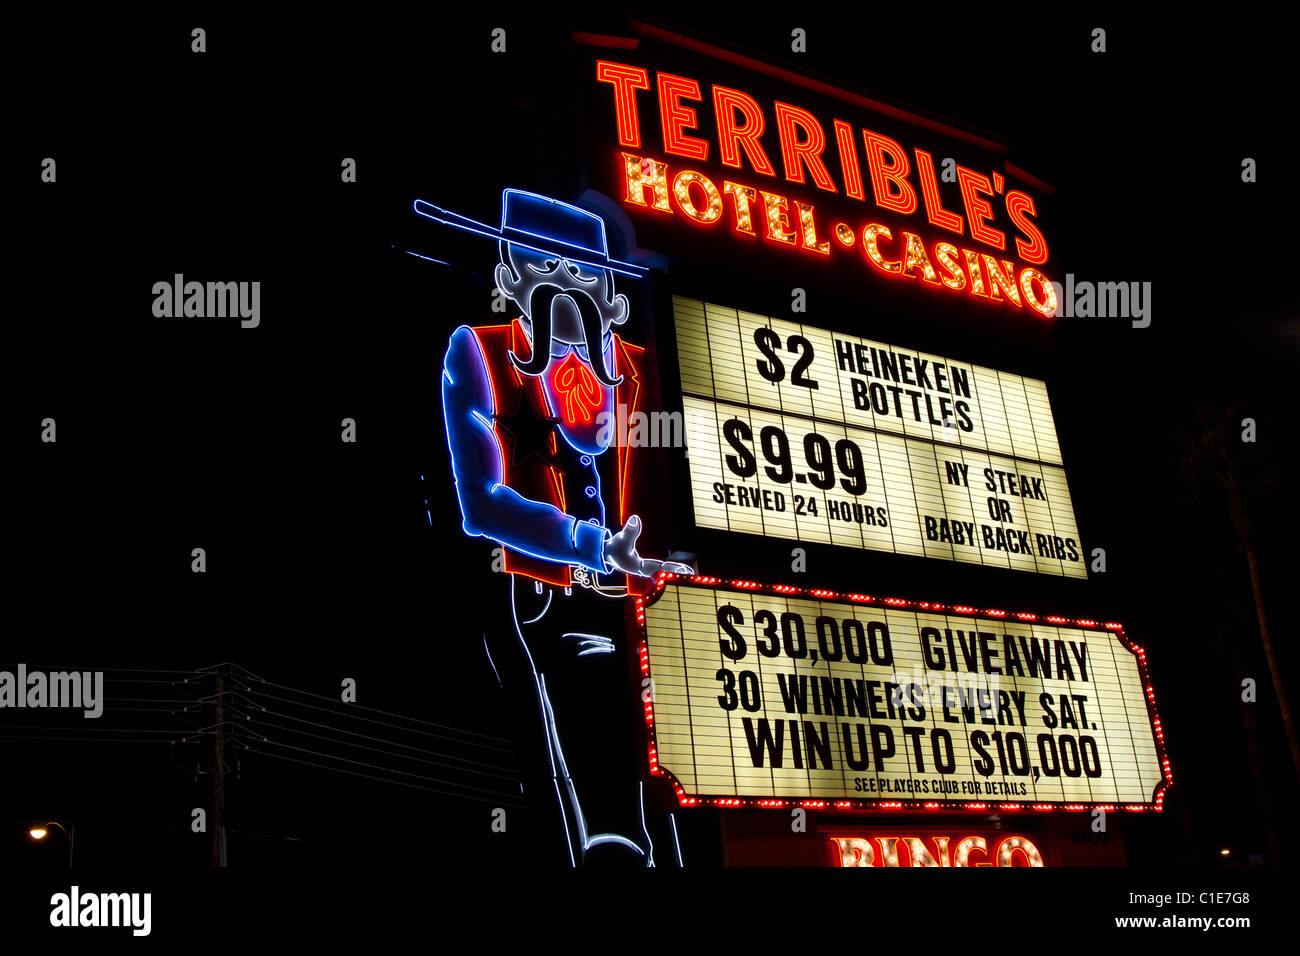 Terrible s hotel and casino las vegas casino games for birthday parties